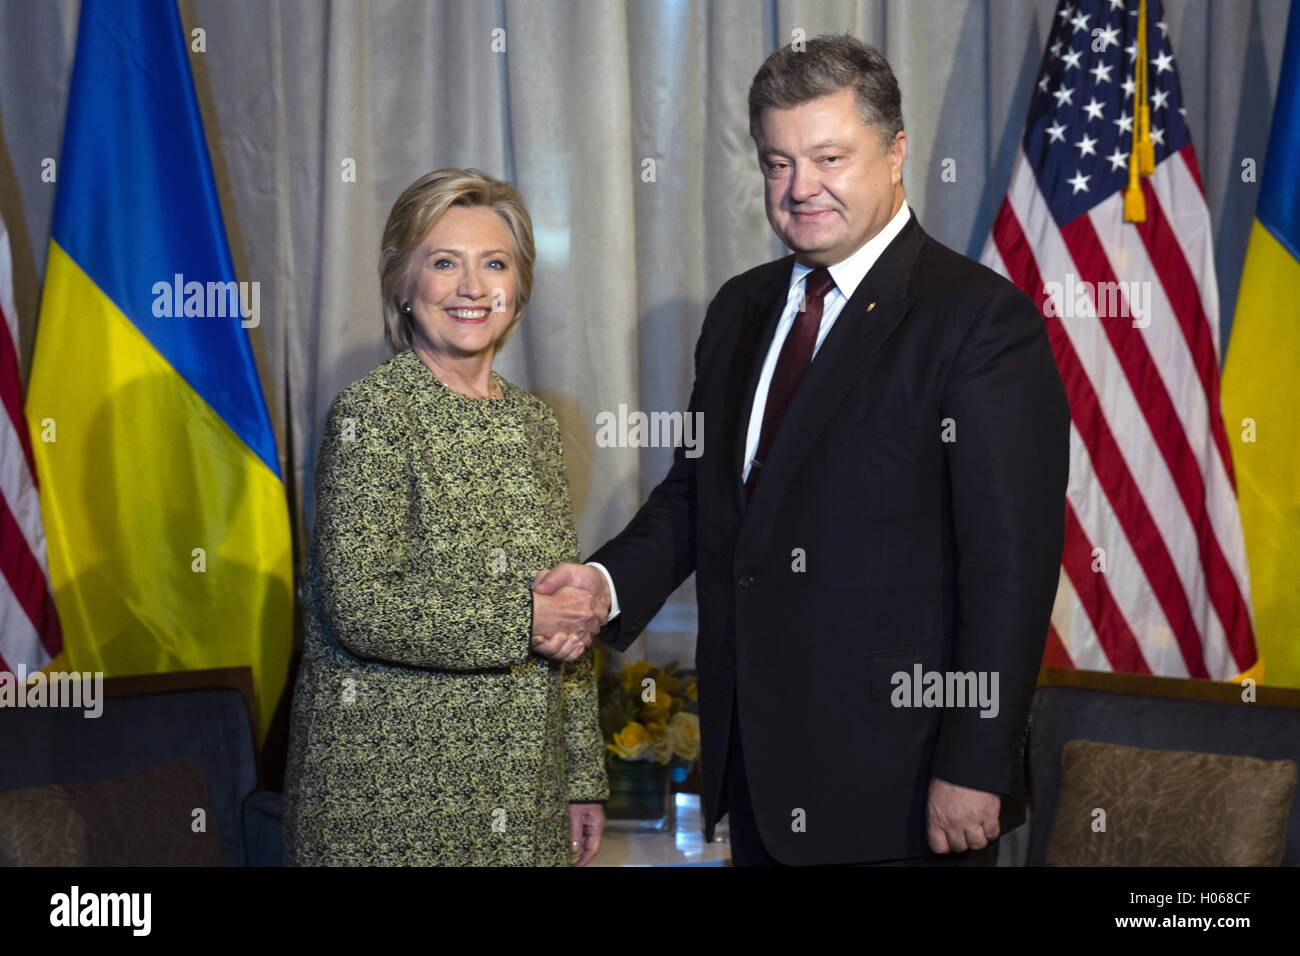 New York City, Usa. 19th Sep, 2016. US Presidential candidate Hillary Clinton (L) and Ukraine's President Petro Stock Photo